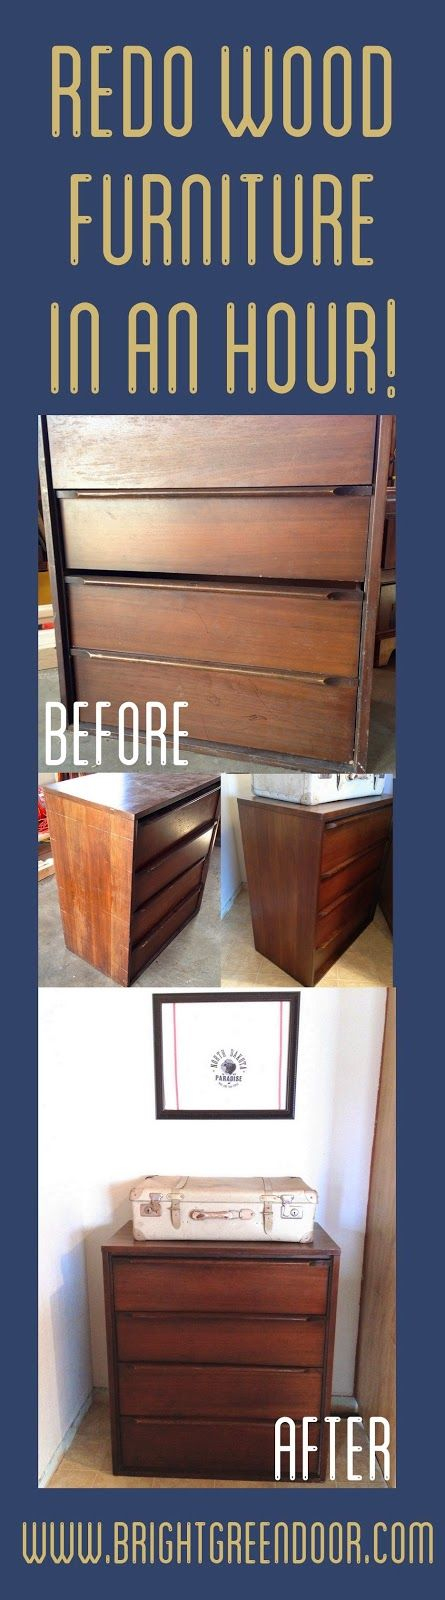 Midcentury Dresser Re-do without Sanding or Staining